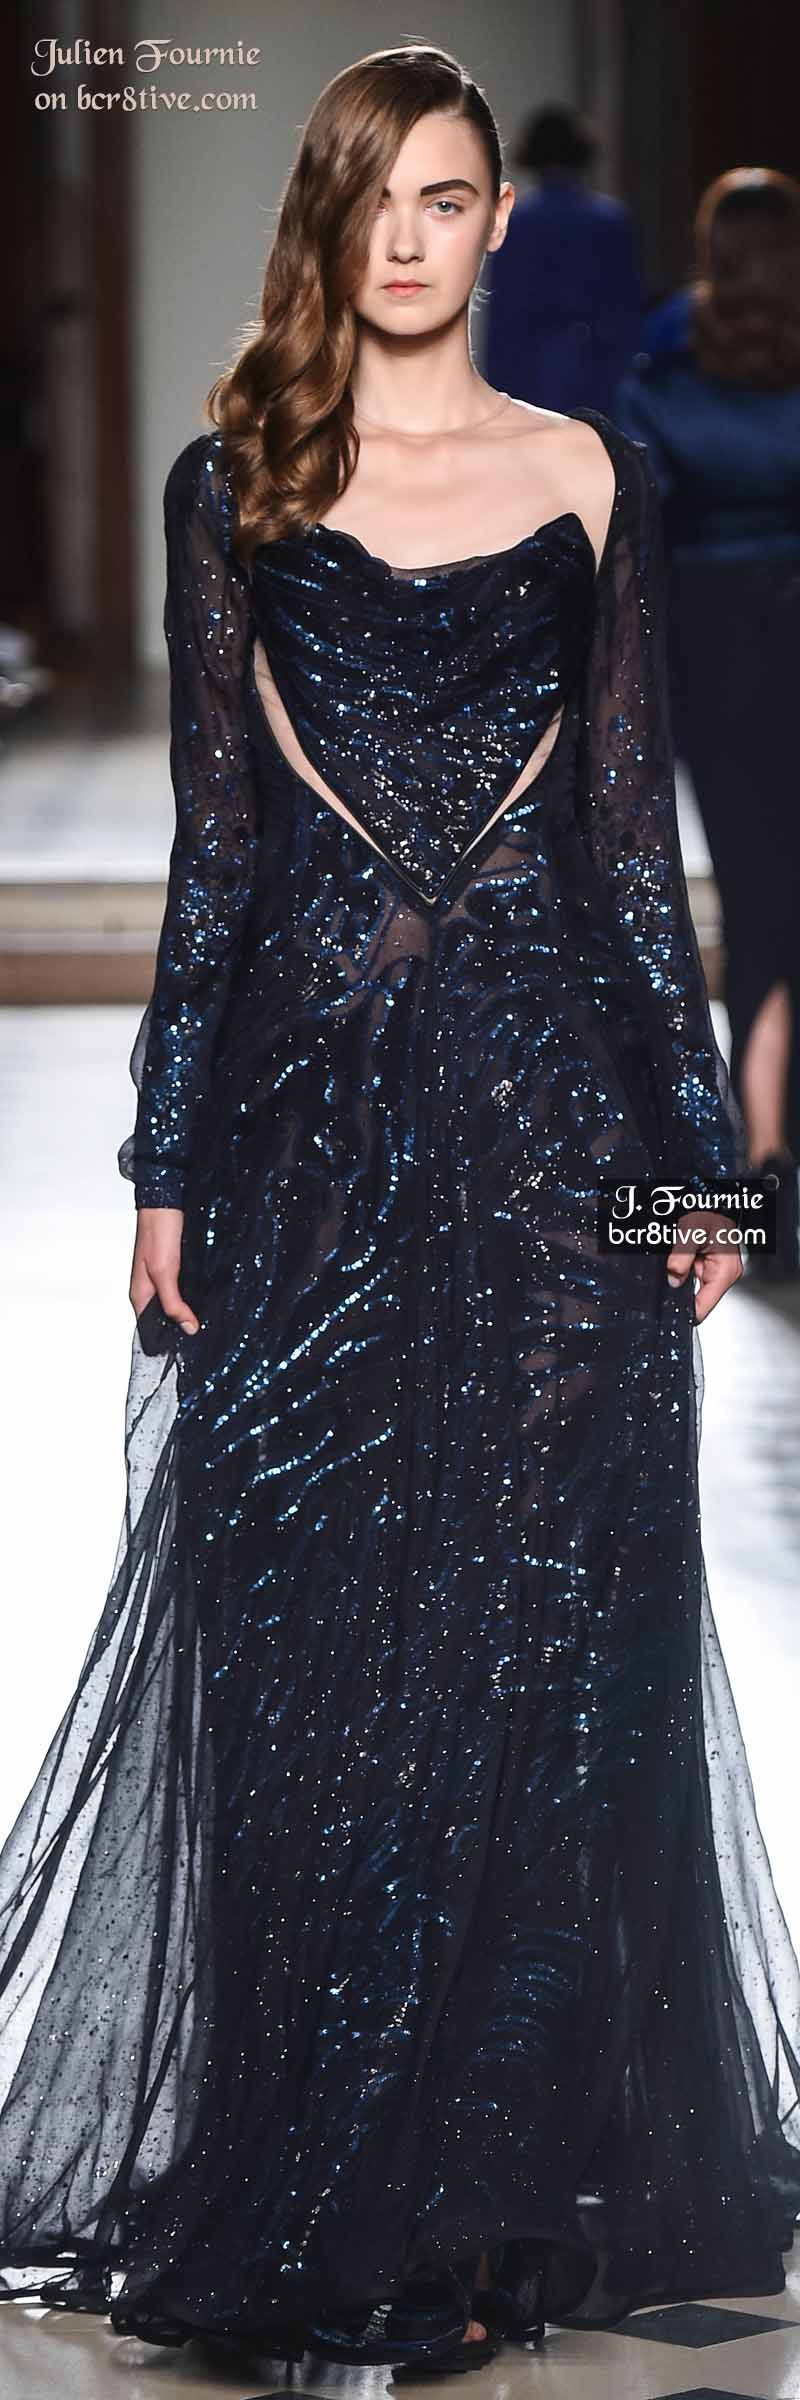 Julien Fournié Fall 2016 Haute Couture